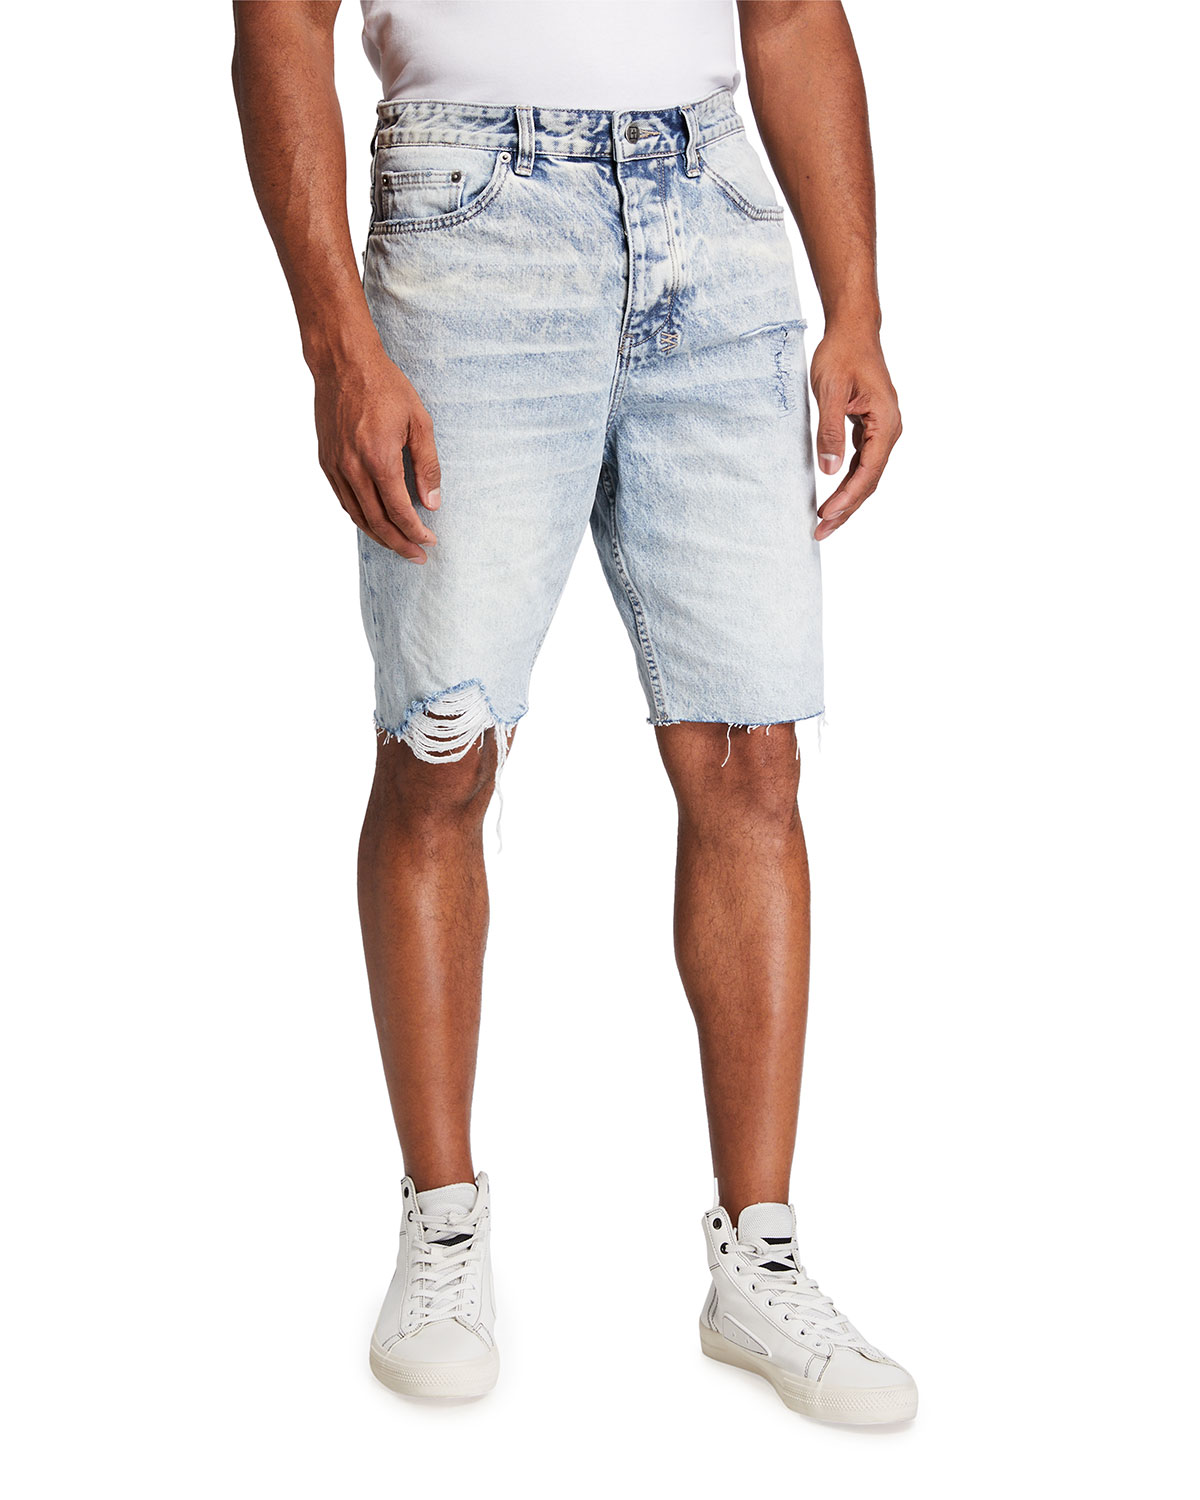 Ksubi MEN'S WOLF DISTRESSED CUTOFF DENIM SHORTS